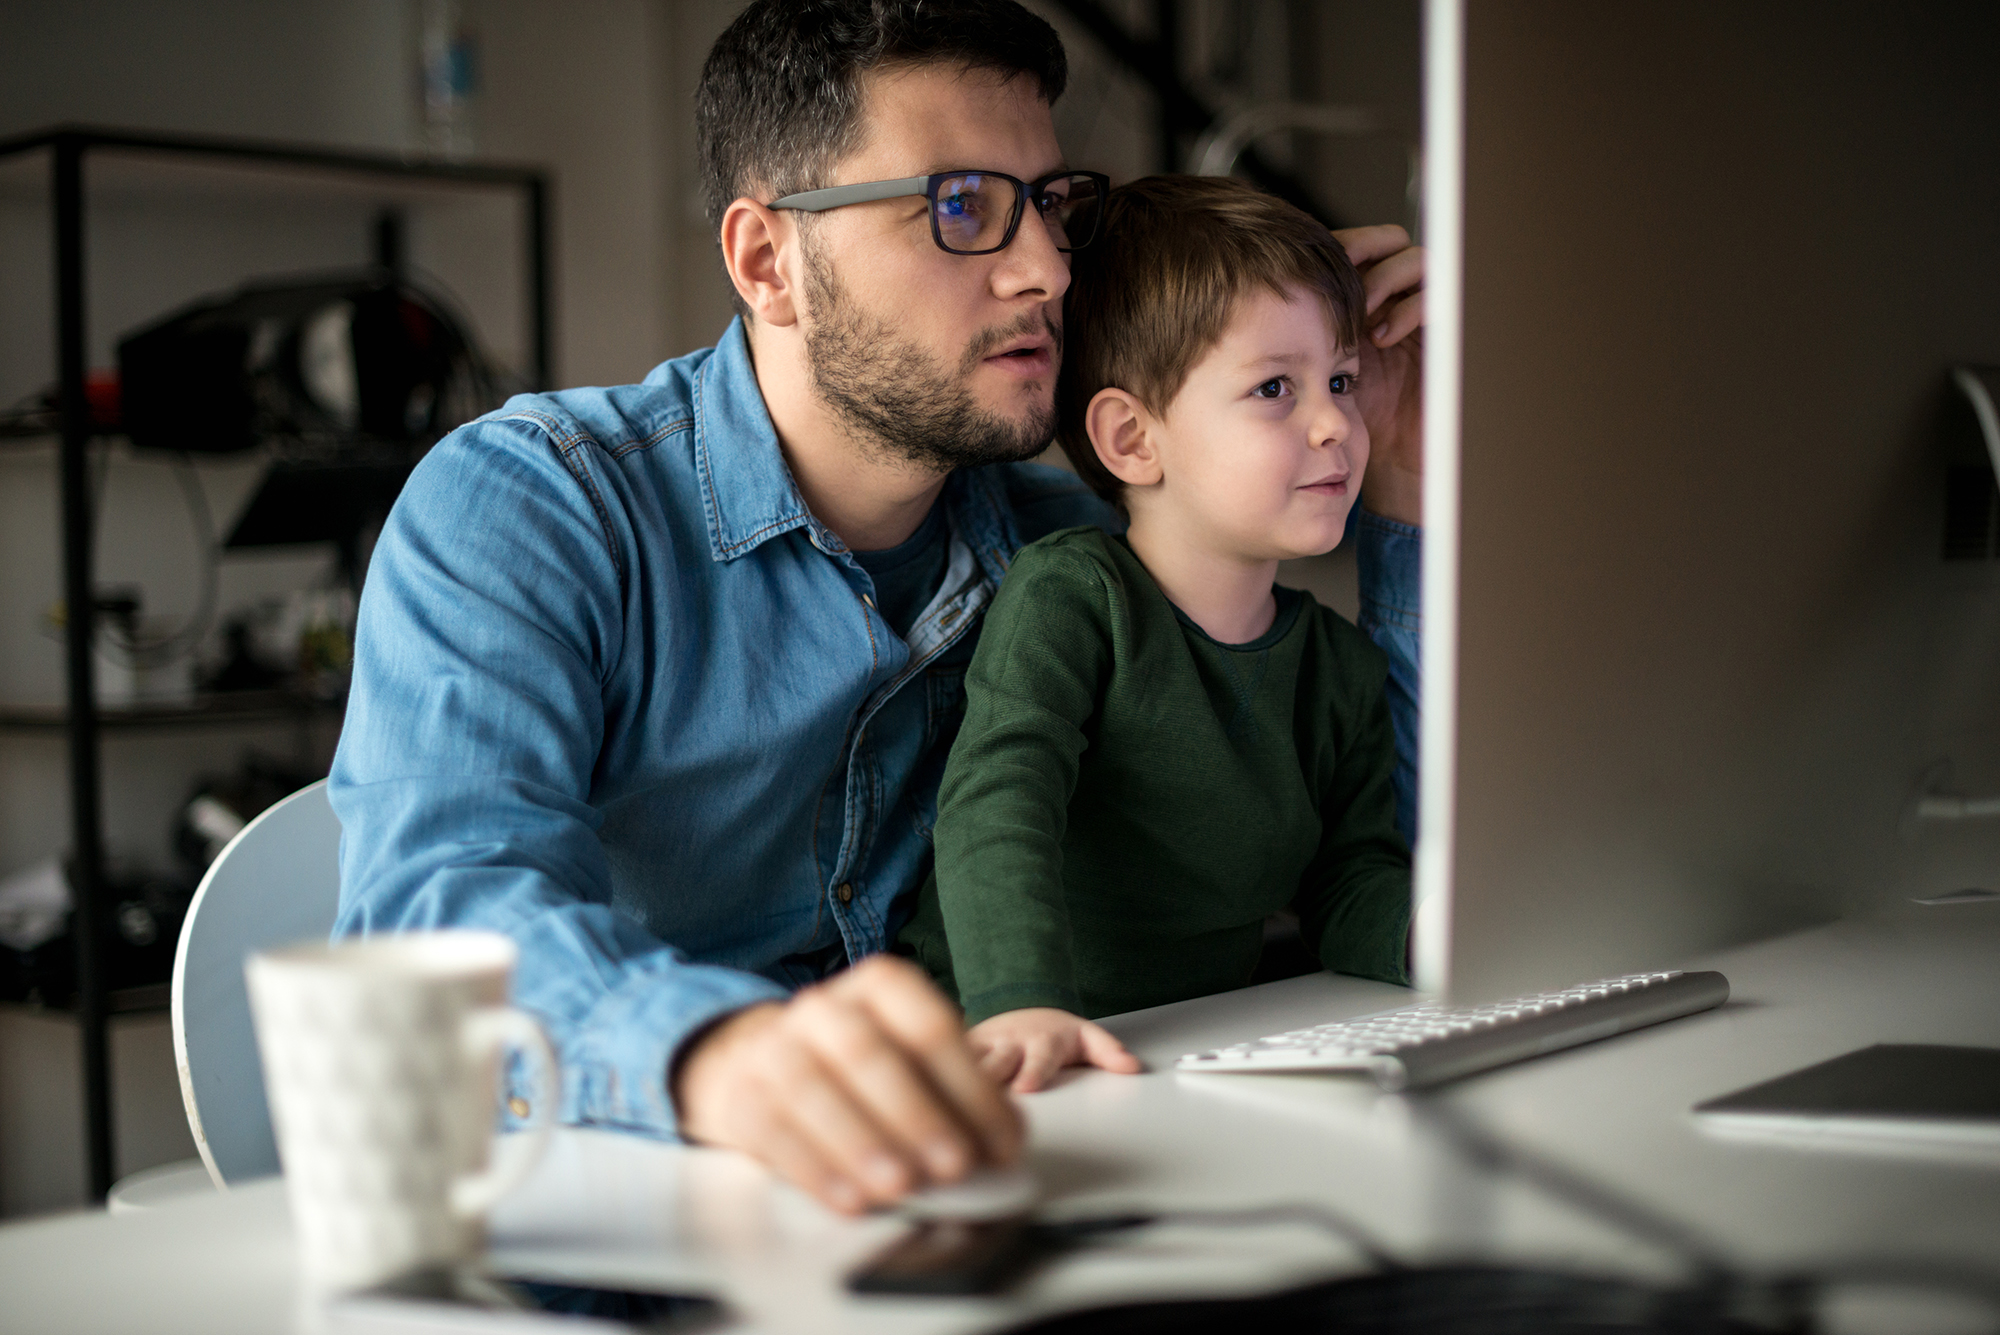 Dad sharing his online course with young son